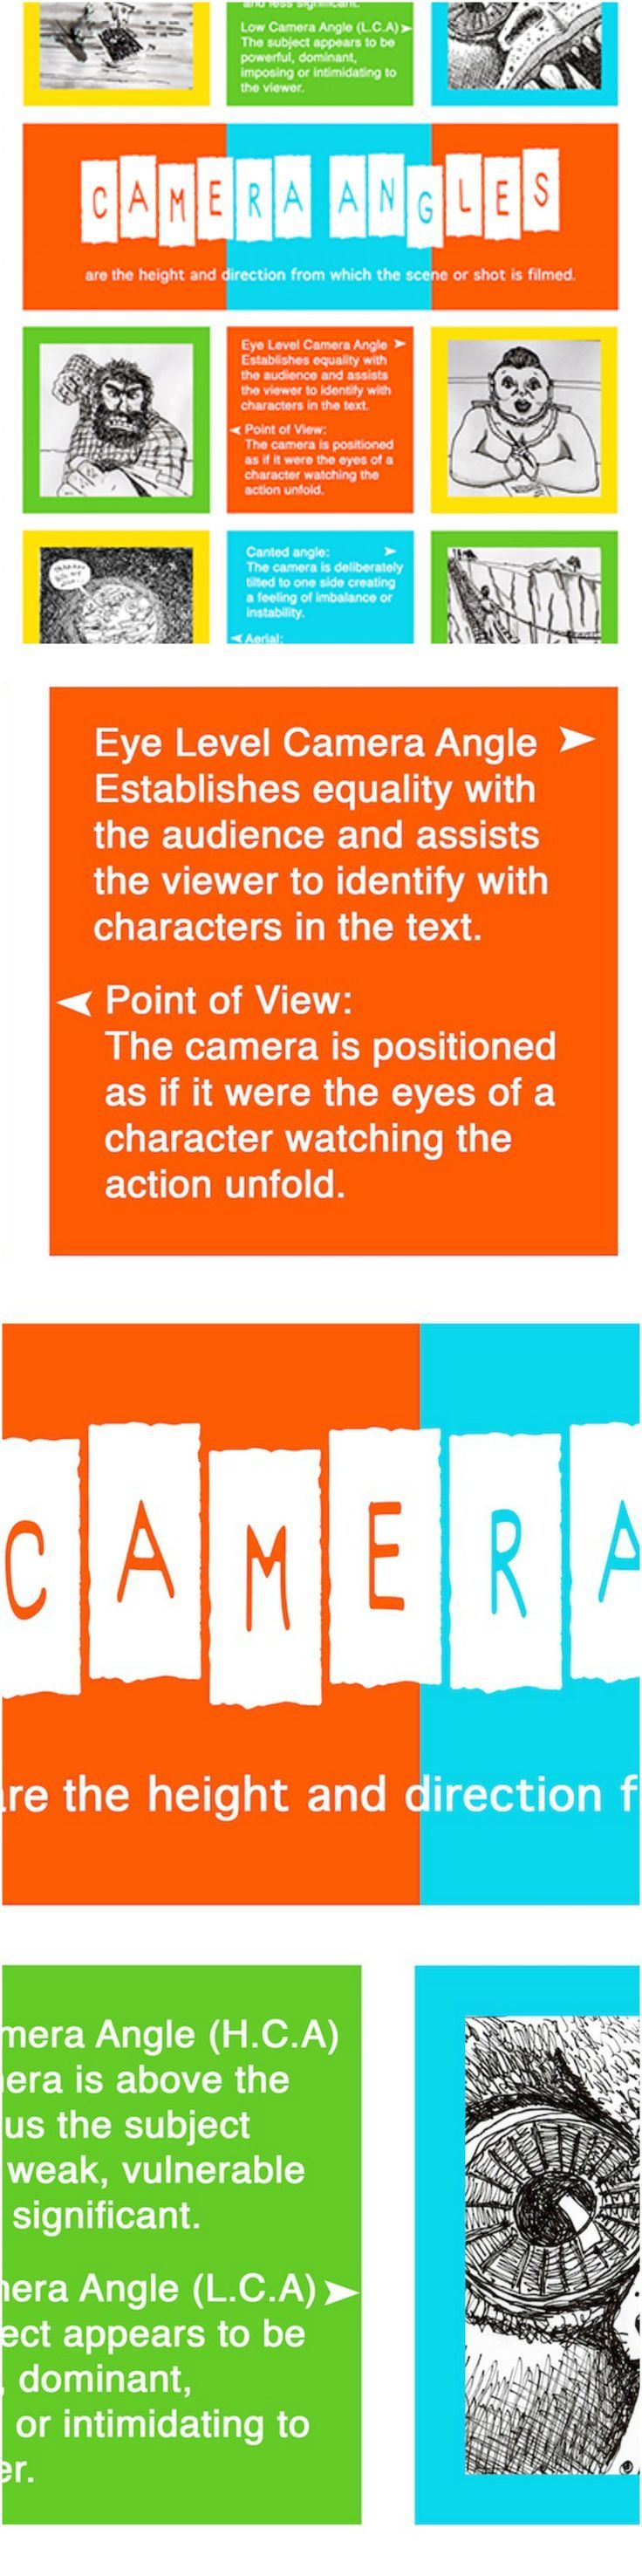 Camera Angles poster useful for teaching Media Literacy to junior, middle and senior high school students. Available in my TpT store along with Shot Sizes poster. Print out as a classroom wall poster or individual handouts. Available at: https://www.teach